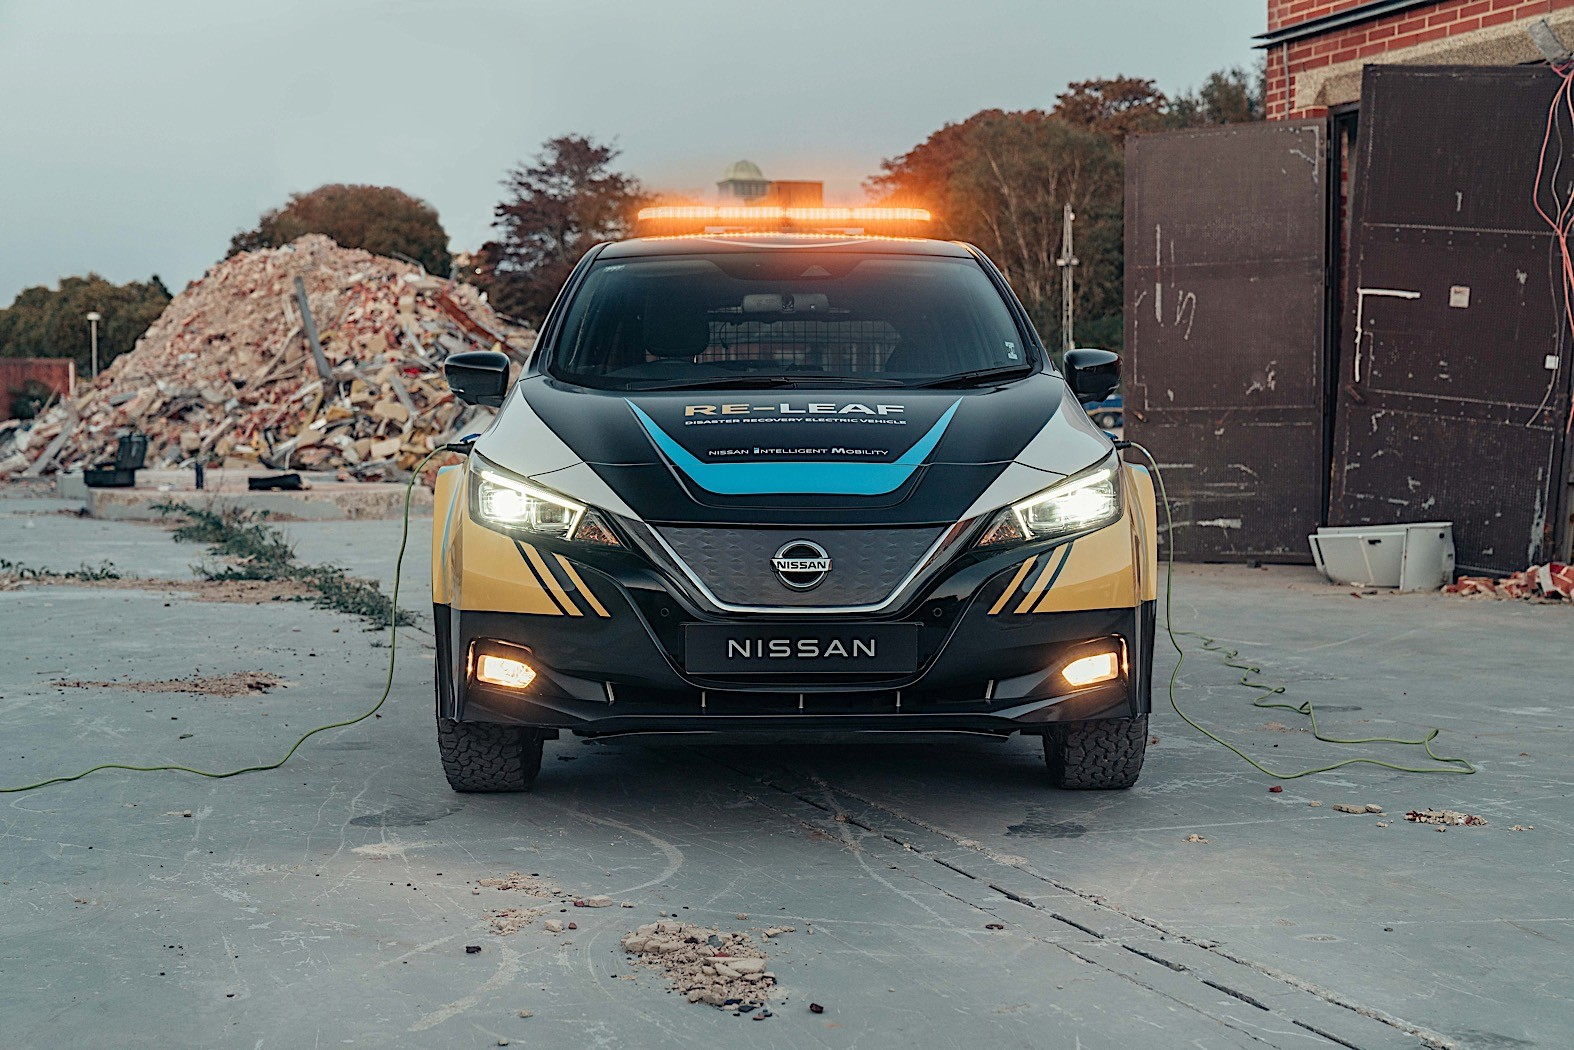 Nissan shows off Leaf-based emergency response vehicle